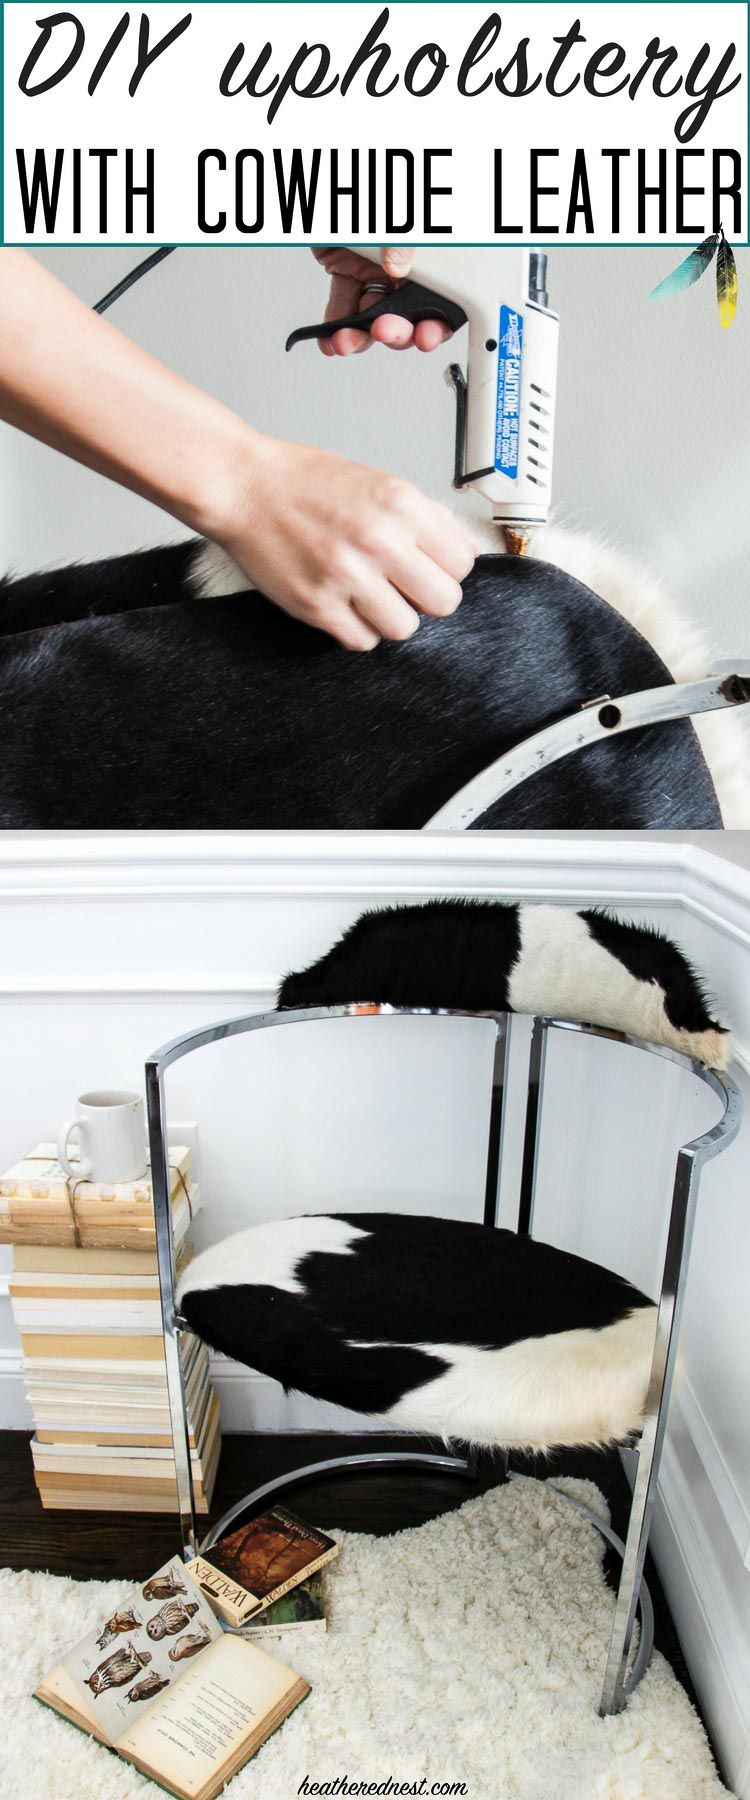 DIY Upholstery with Cowhide Leather | Pinterest | DIY und ...